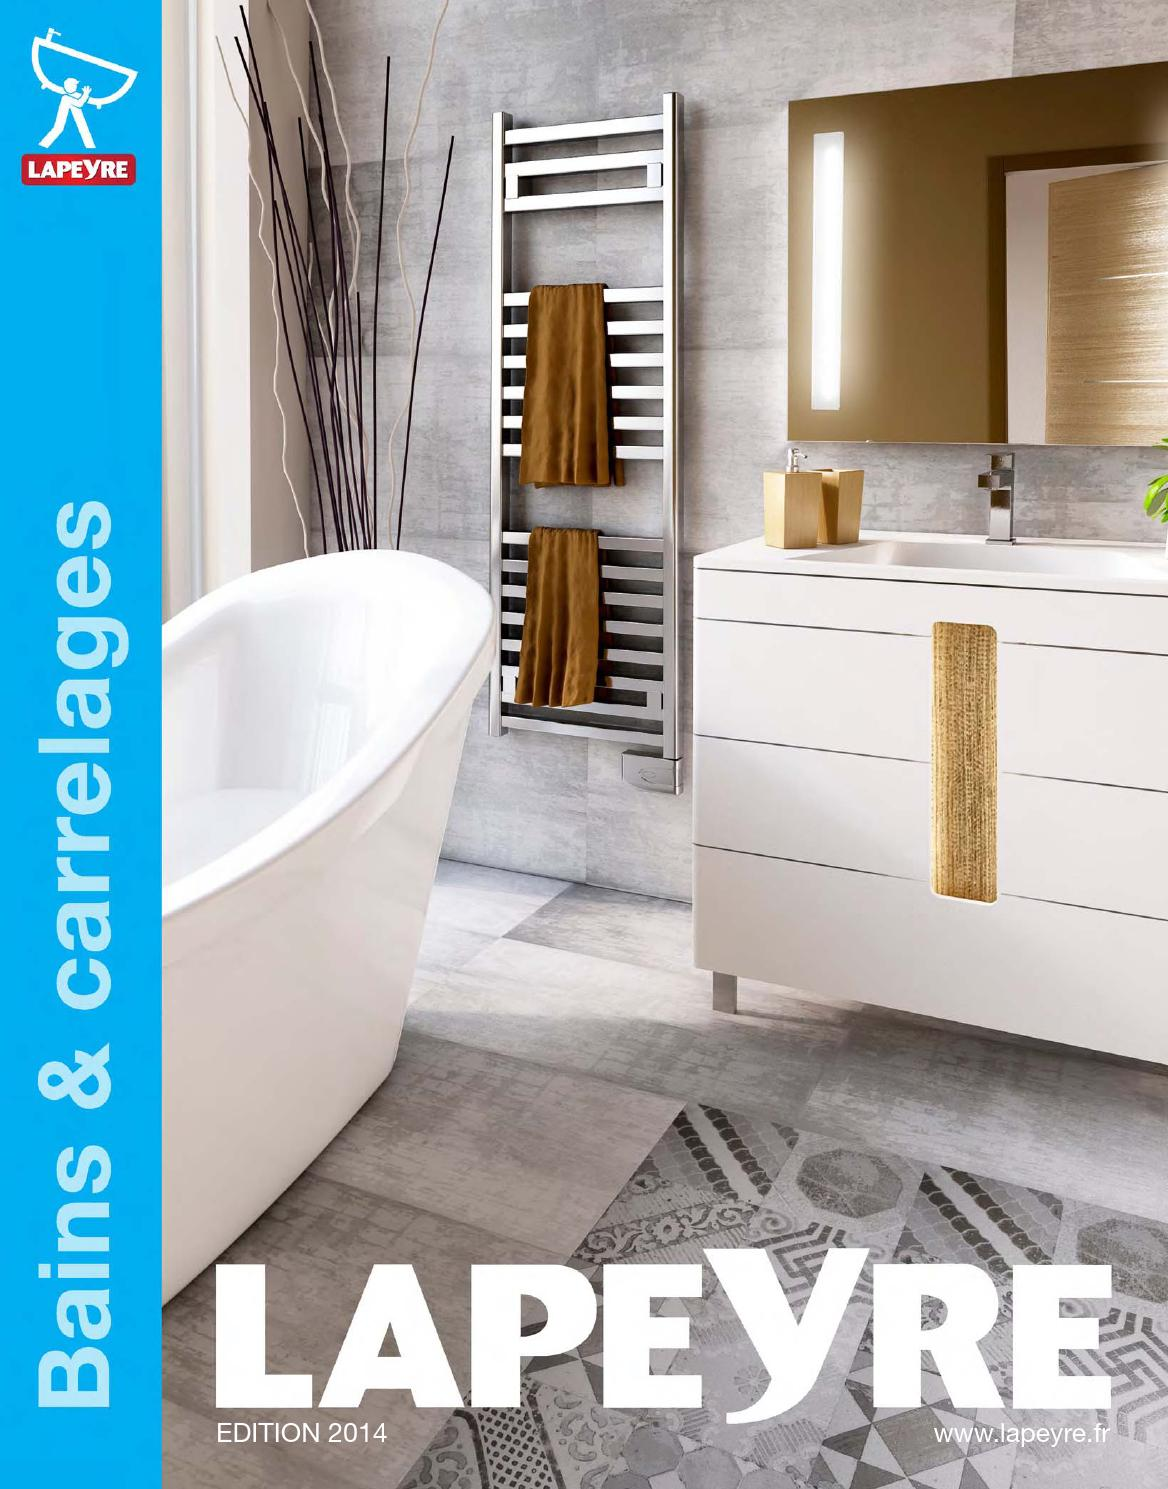 Catalogue Lapeyre - Bains & Carrelages 18 by joe monroe - issuu